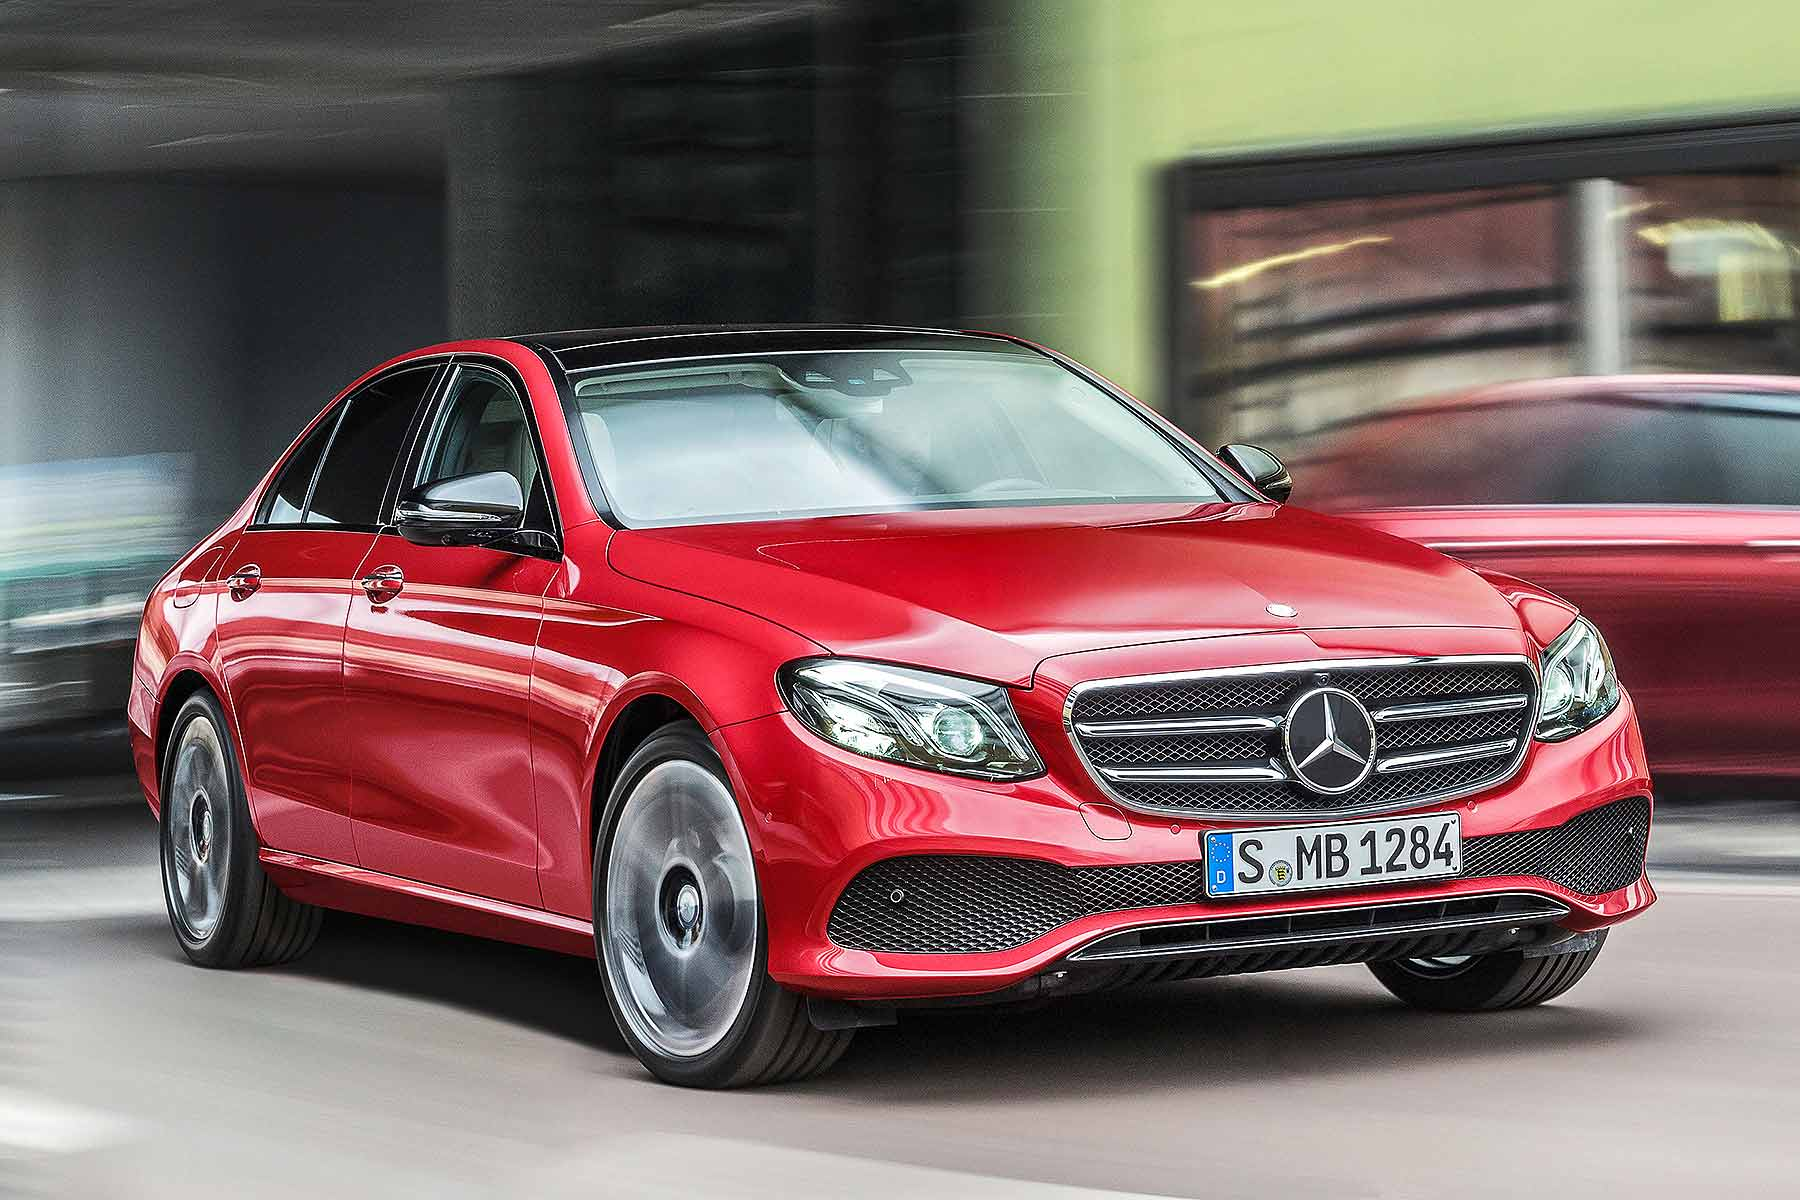 New 2016 mercedes benz e class revealed in detroit for 2016 mercedes benz e class sedan